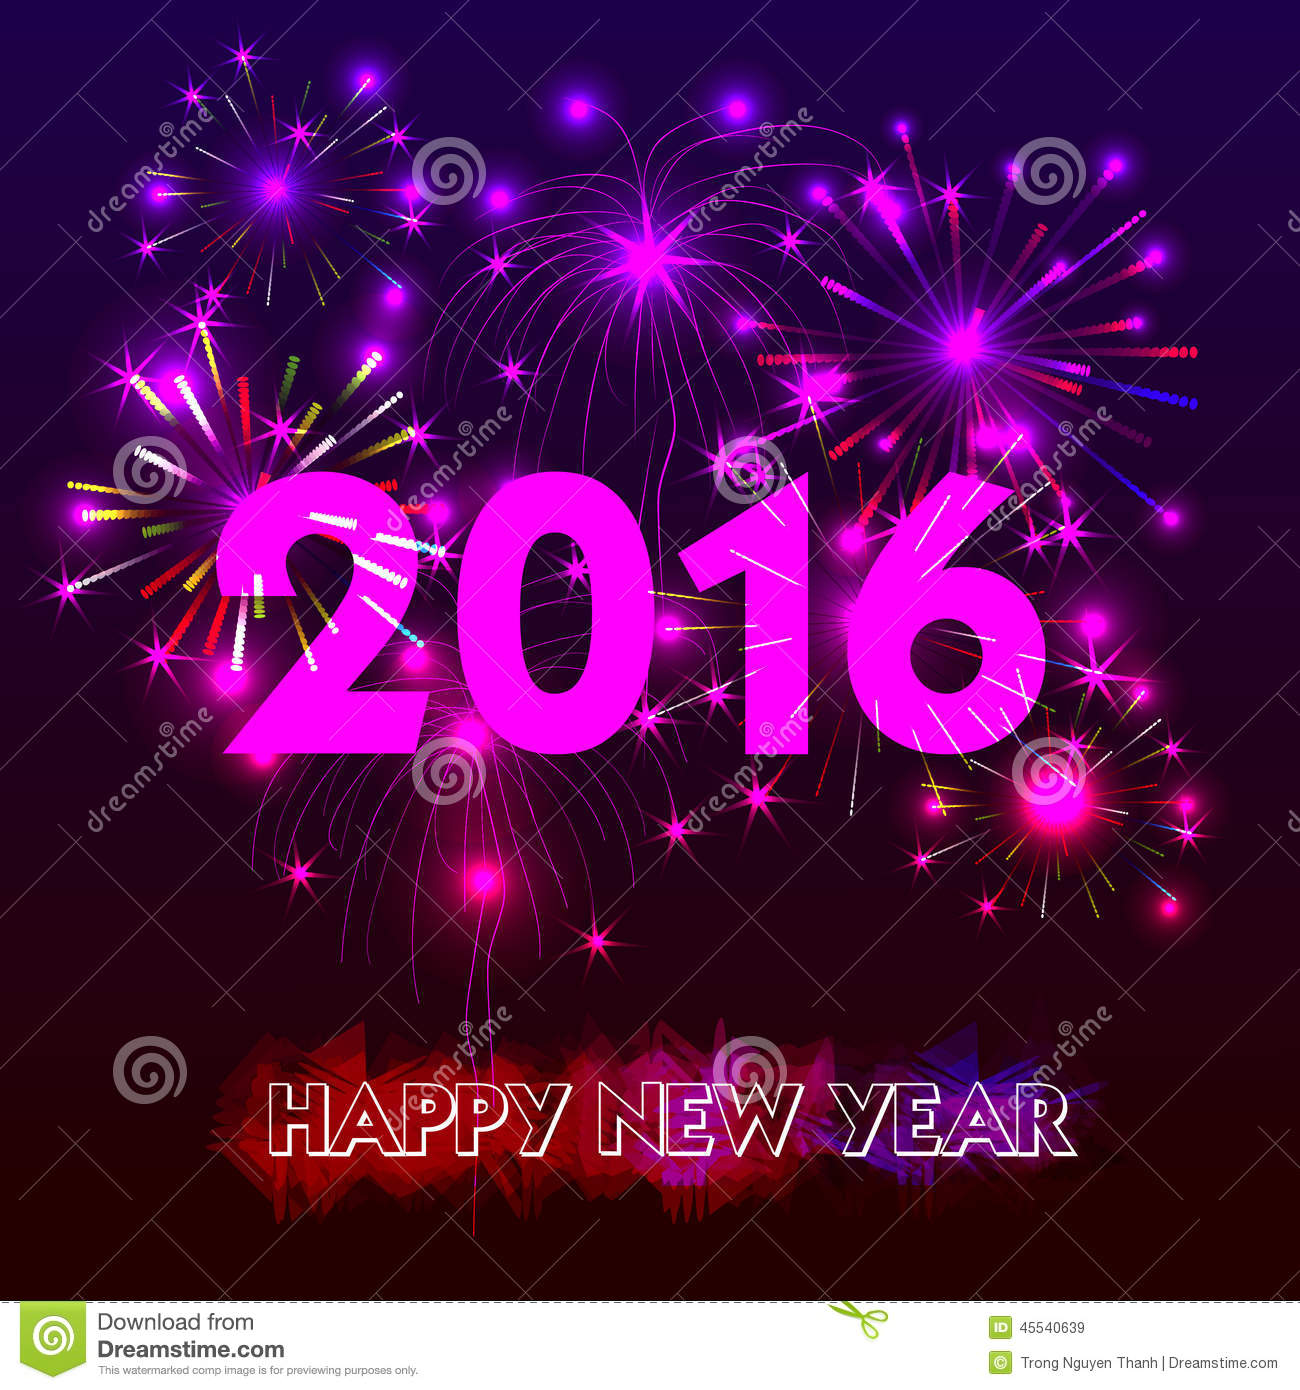 Happy New Year 2016 Image Wallpaper 17179 Wallpaper computer 1300x1390